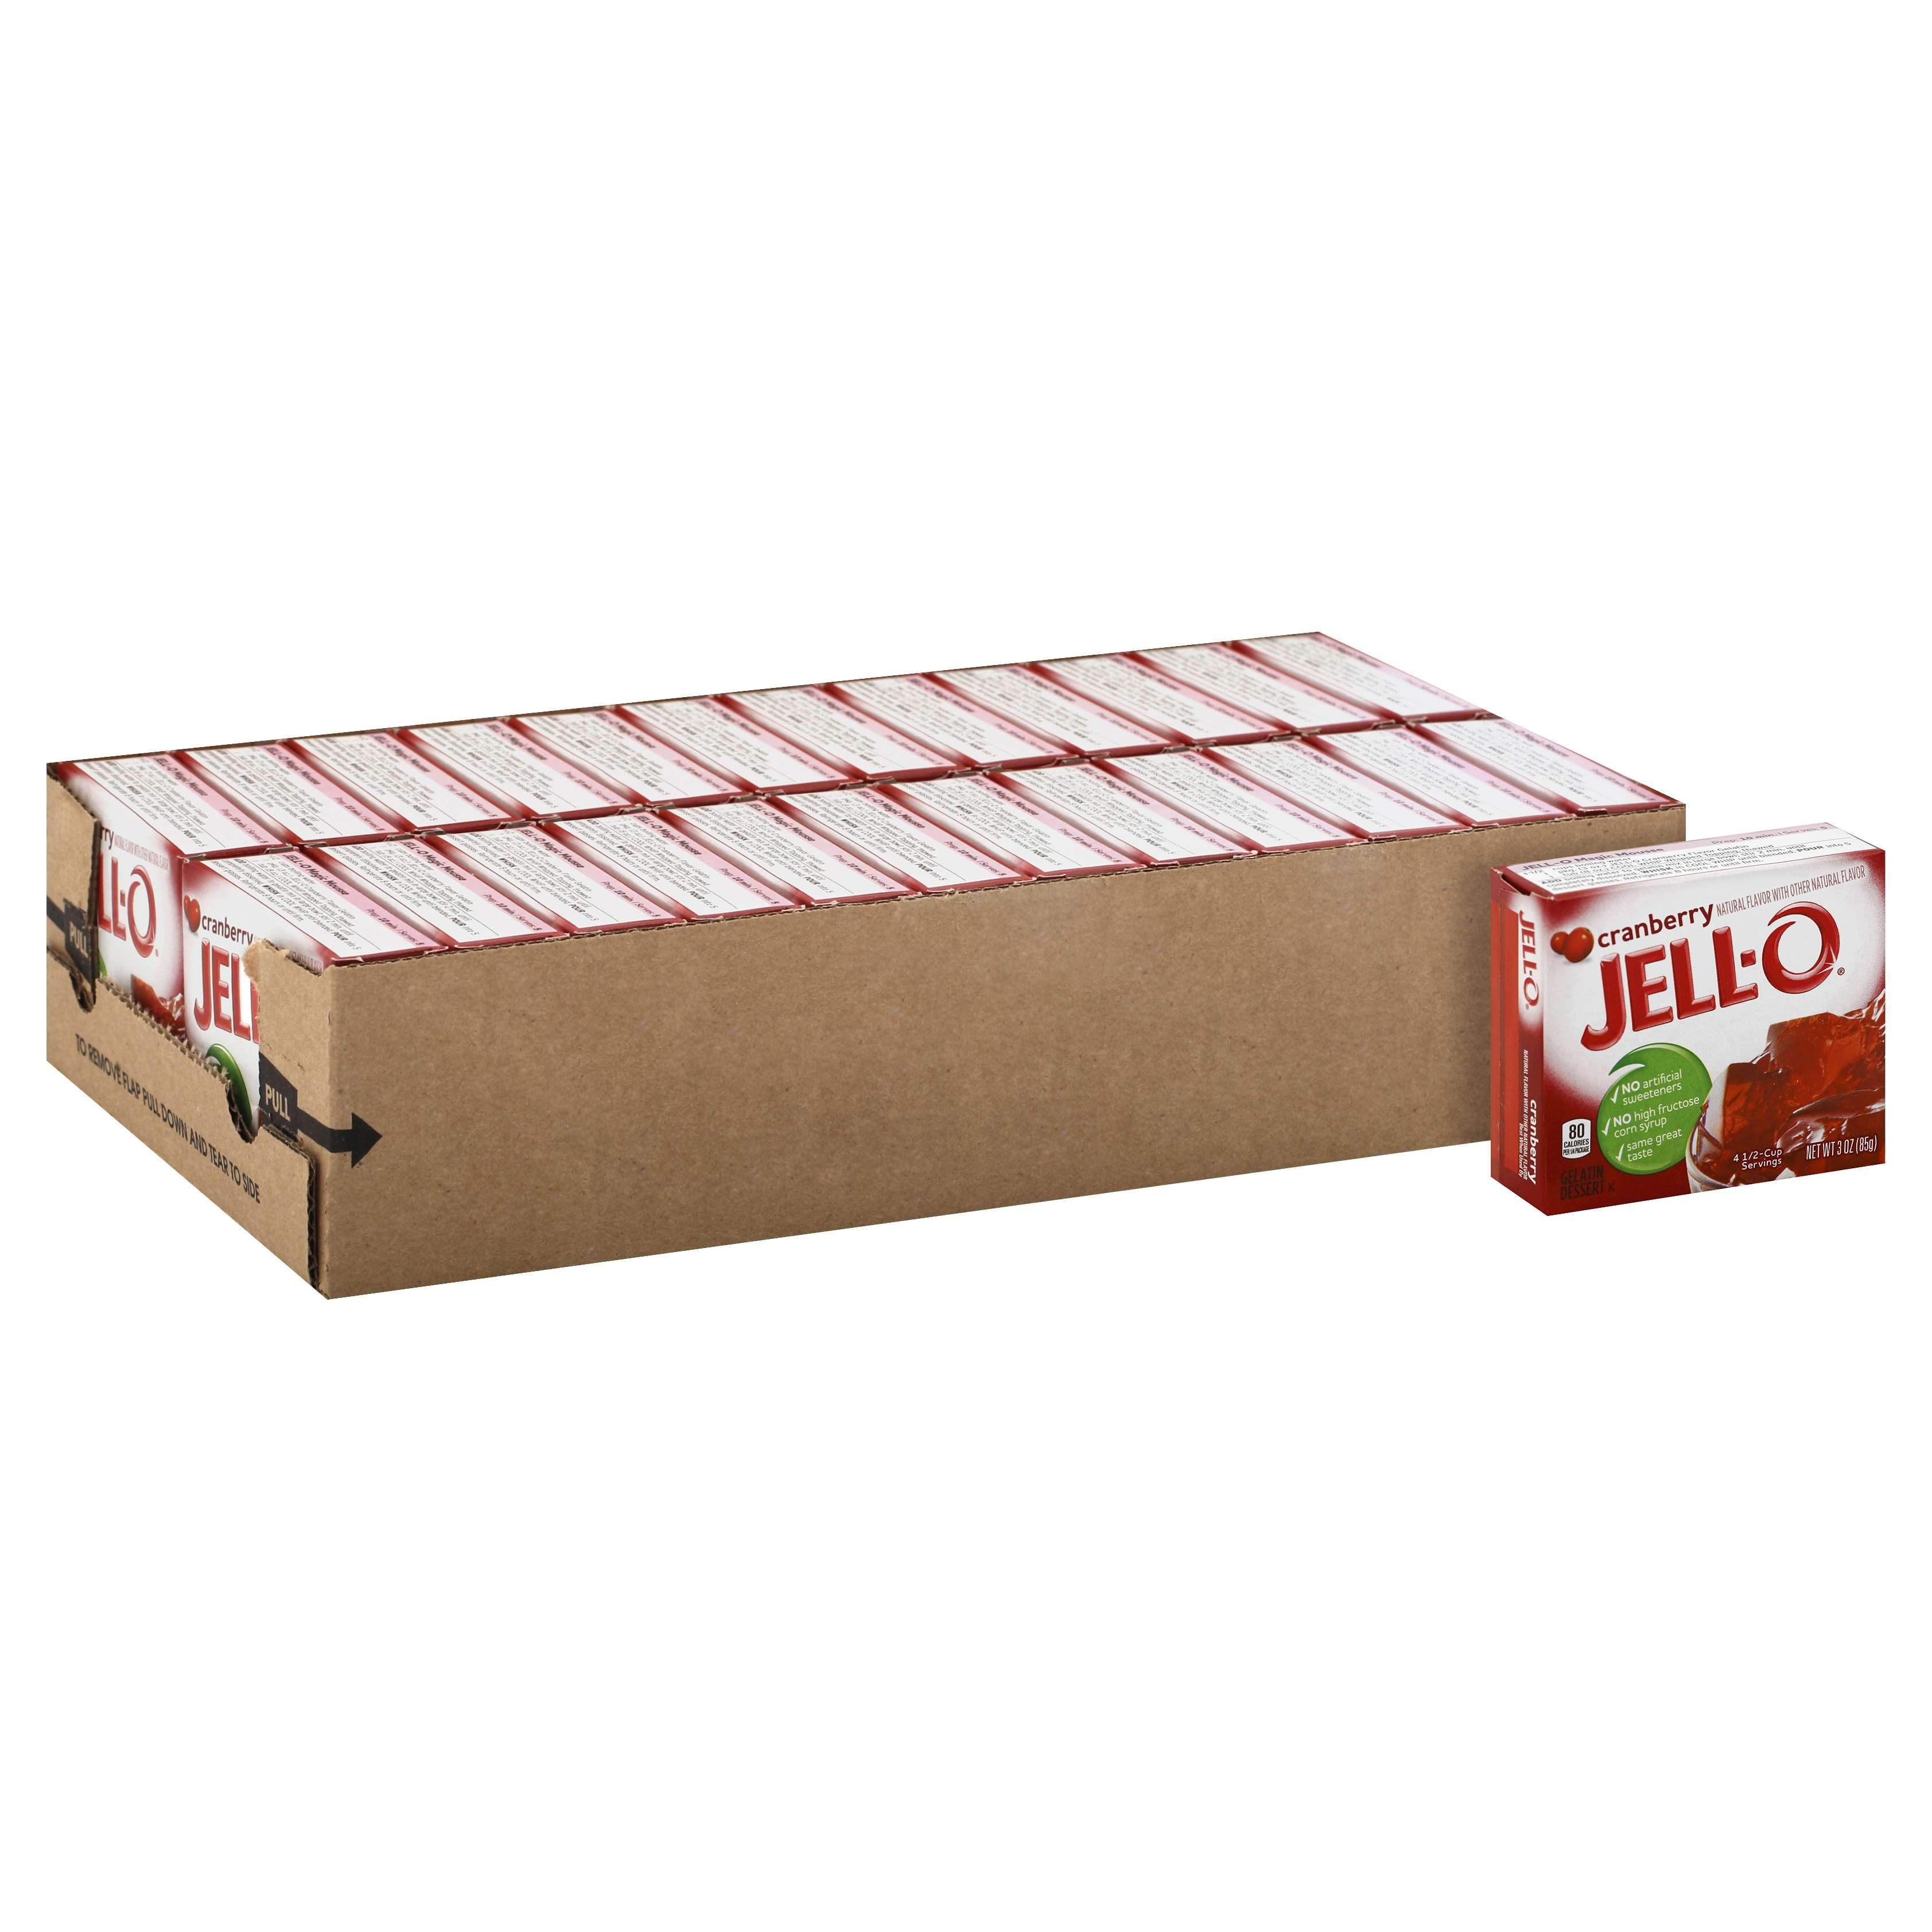 Jell-O Gelatin Mix Jell-O Cranberry 3 Oz-24 Count